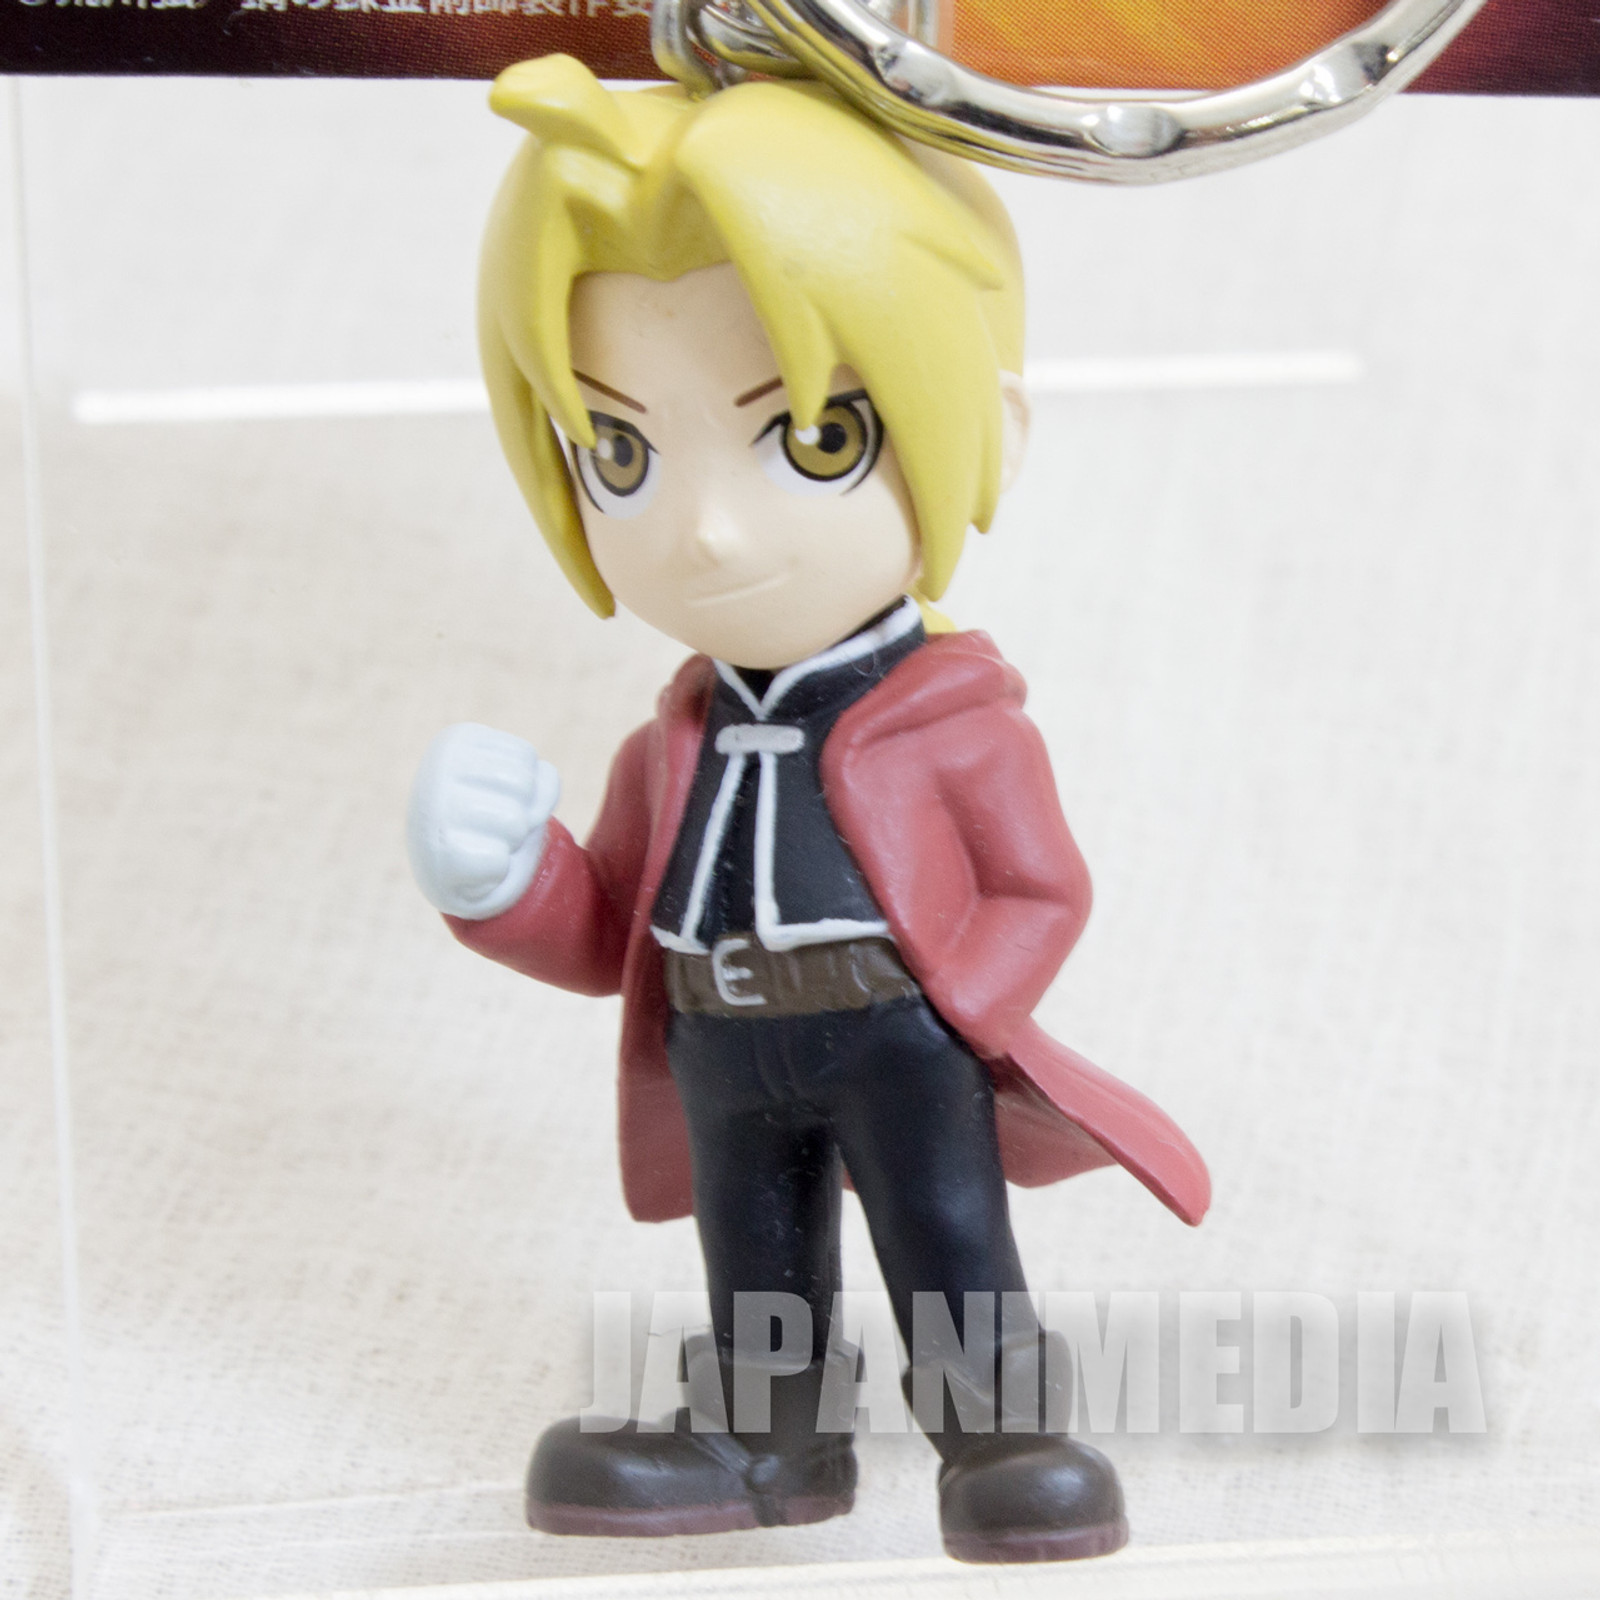 FullMetal Alchemist Edward Elric Figure Key Chain JAPAN ANIME 2